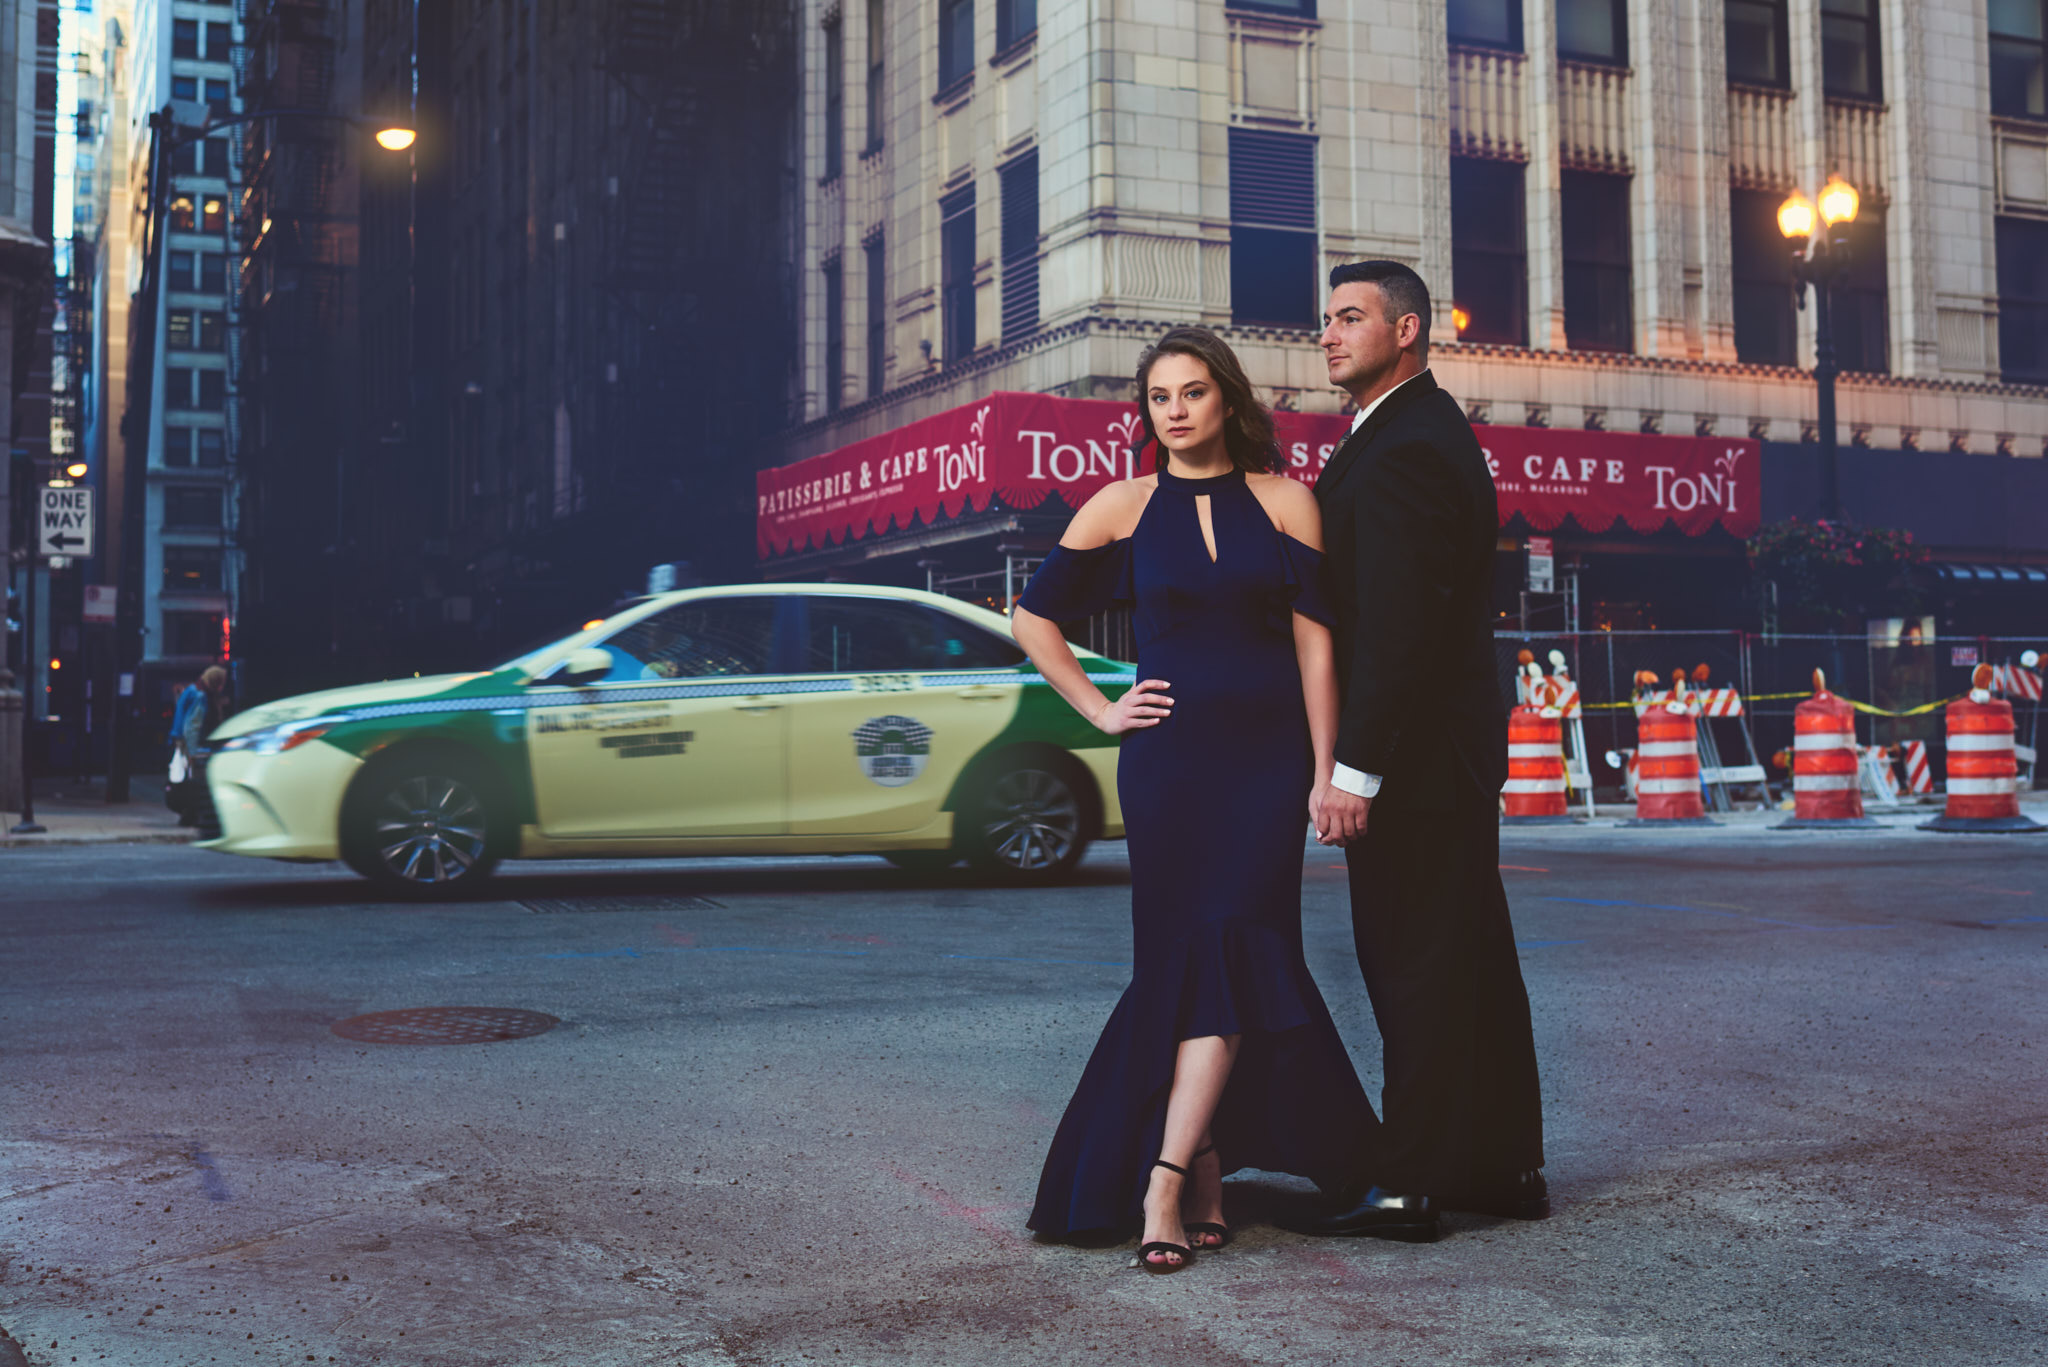 Formal engagement portrait with taxi passing in background